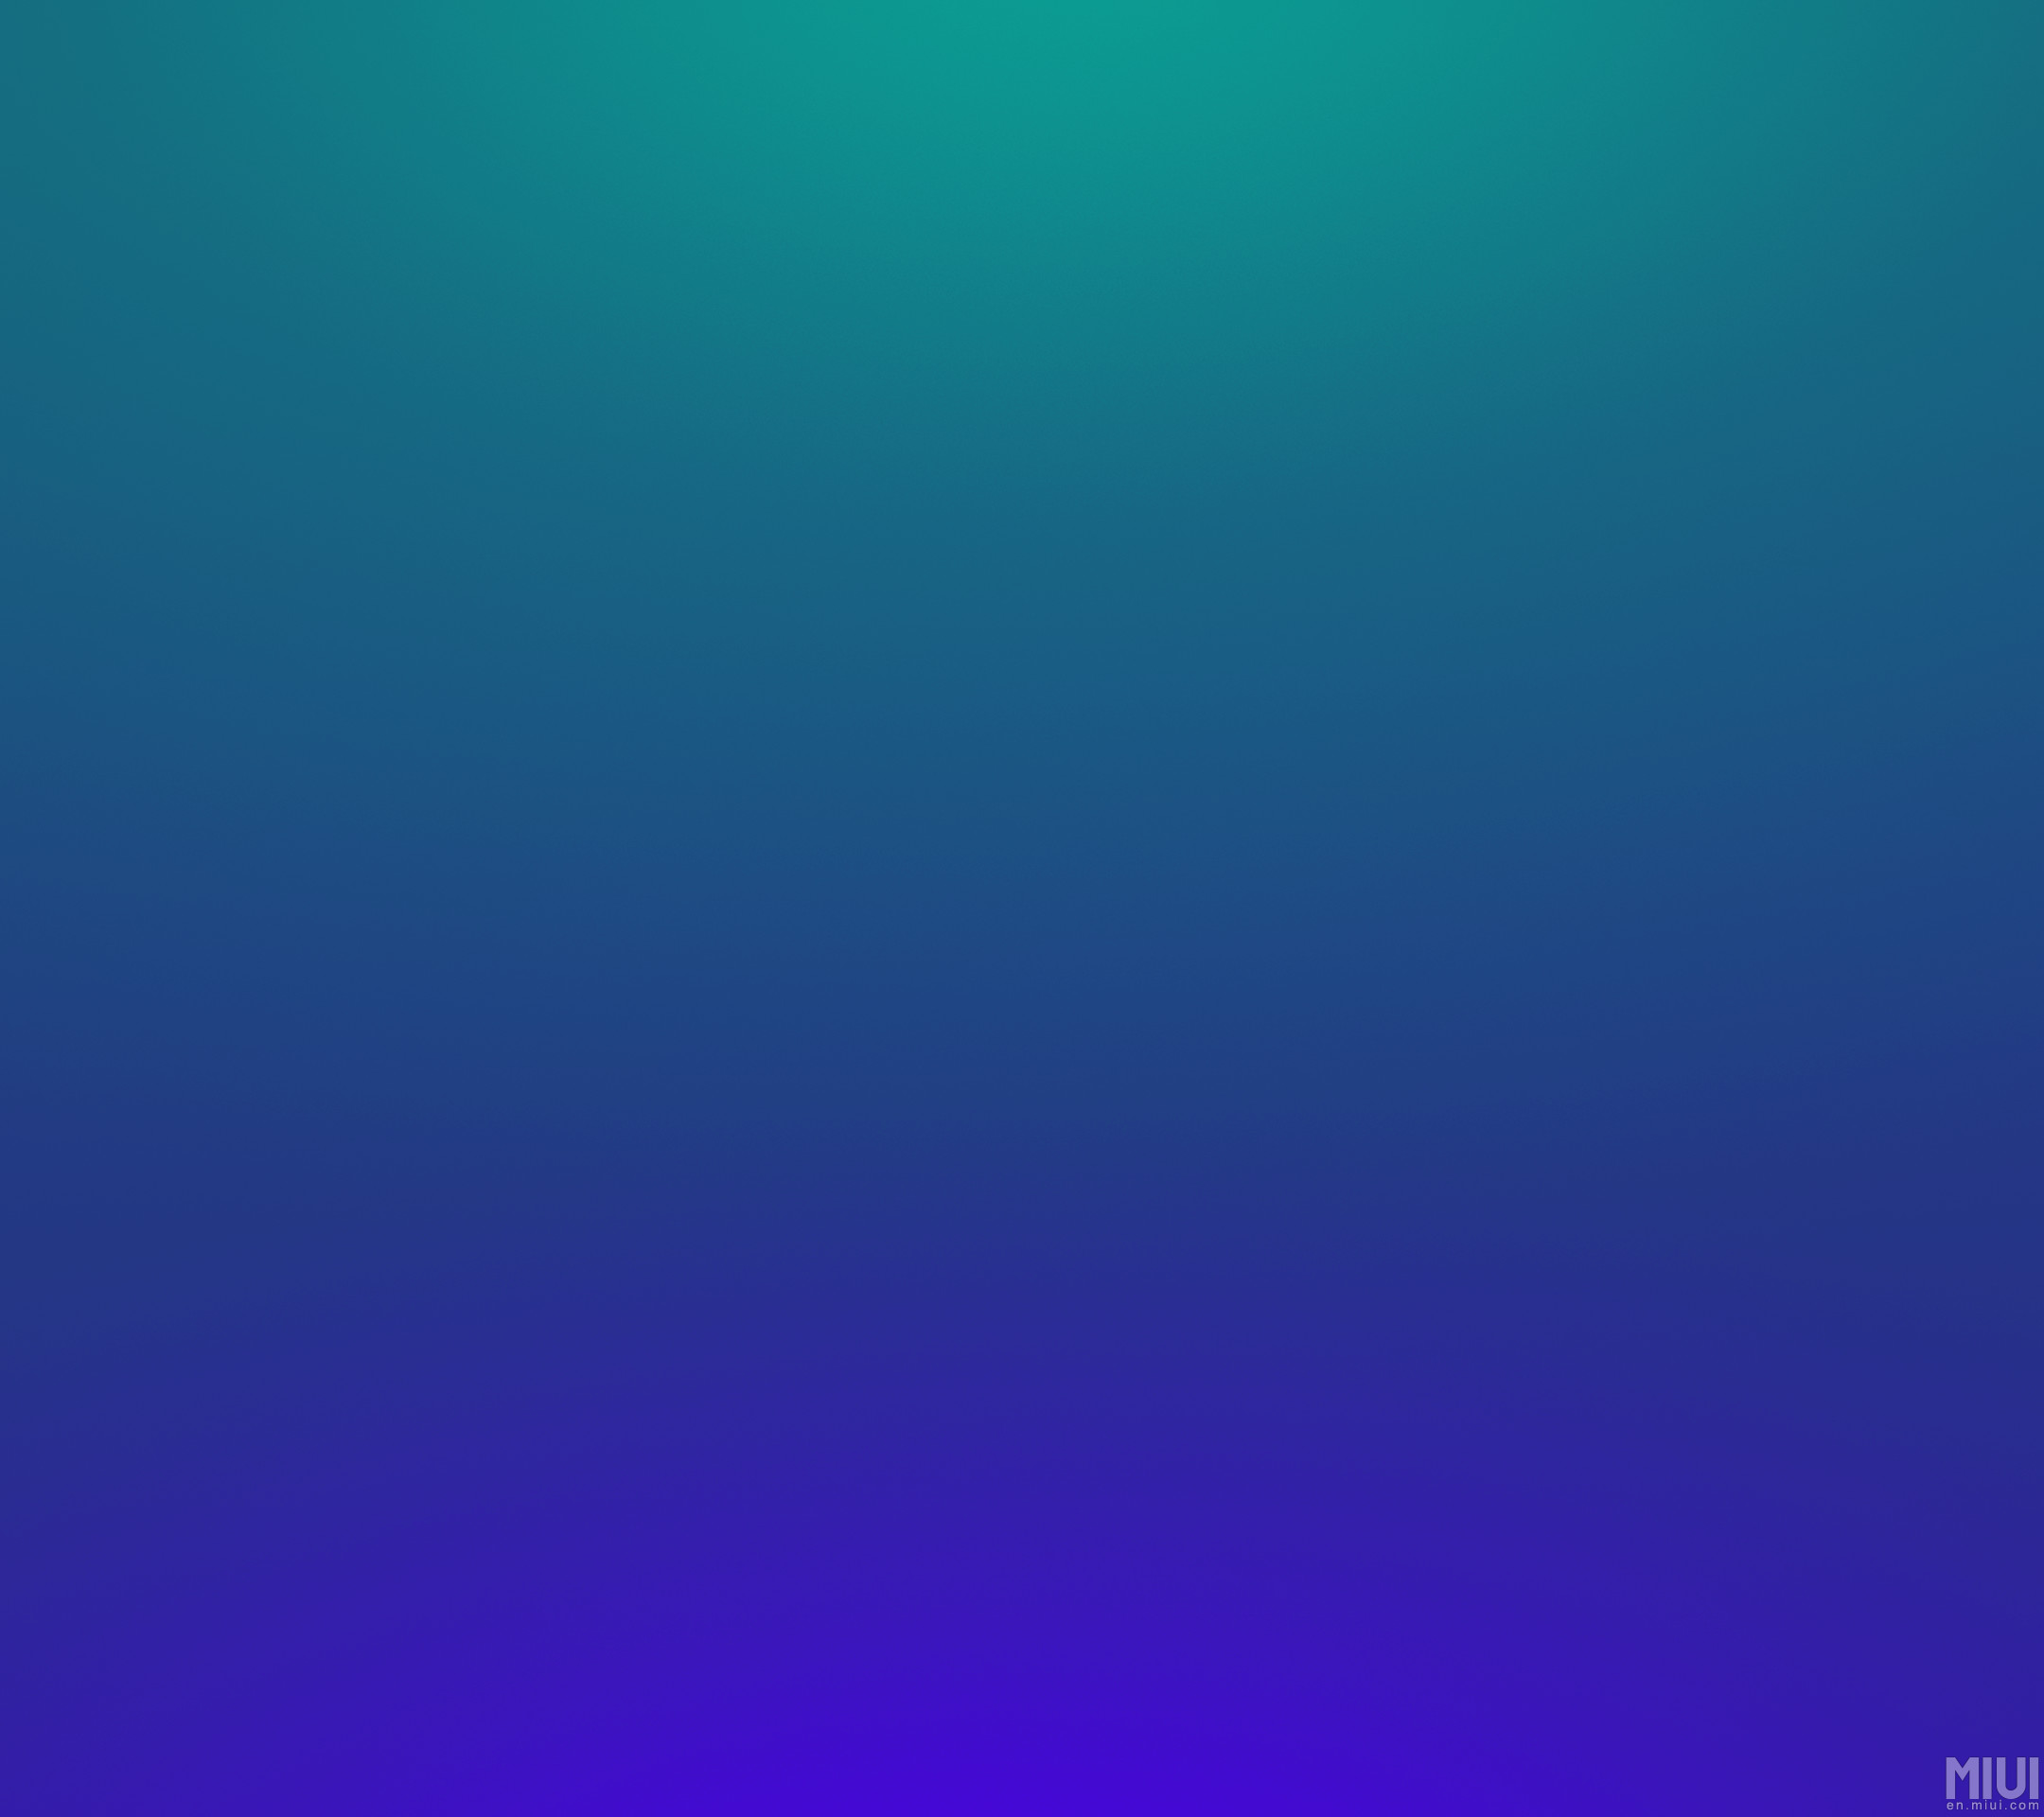 2160x1920 blue-green.png